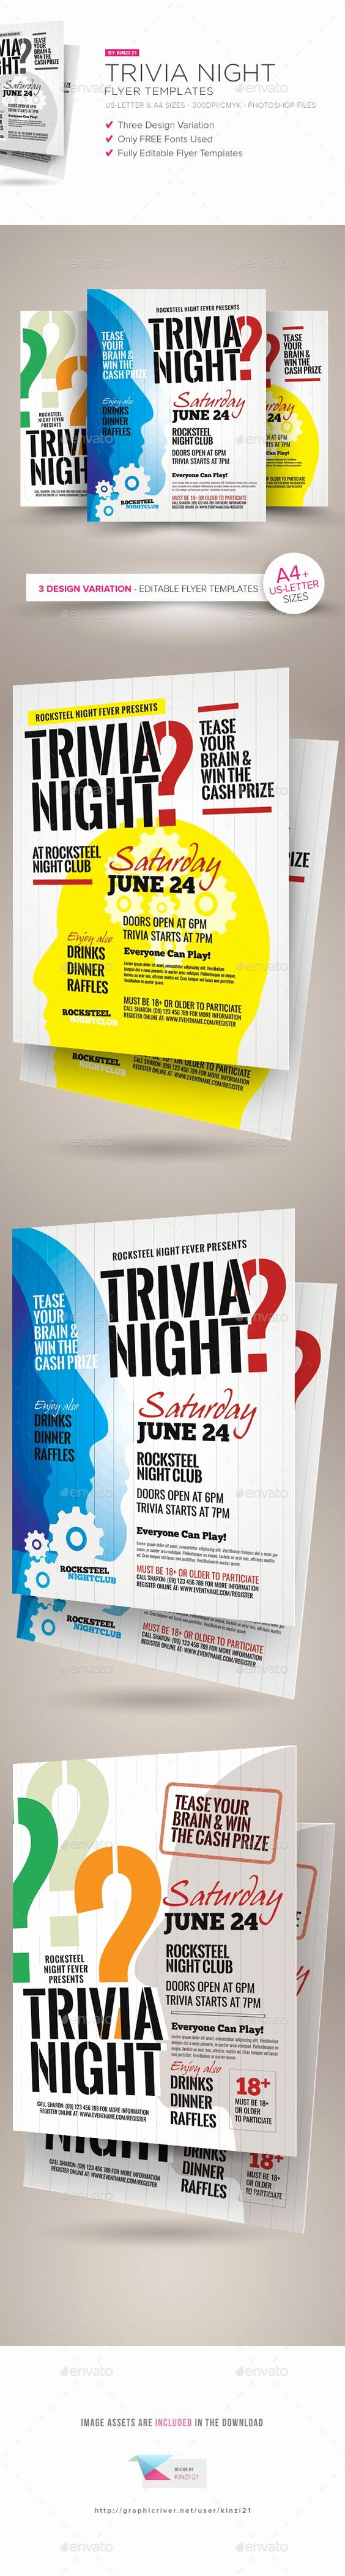 Trivia Night Flyer Template Free New Night Trivia and Flyers On Pinterest